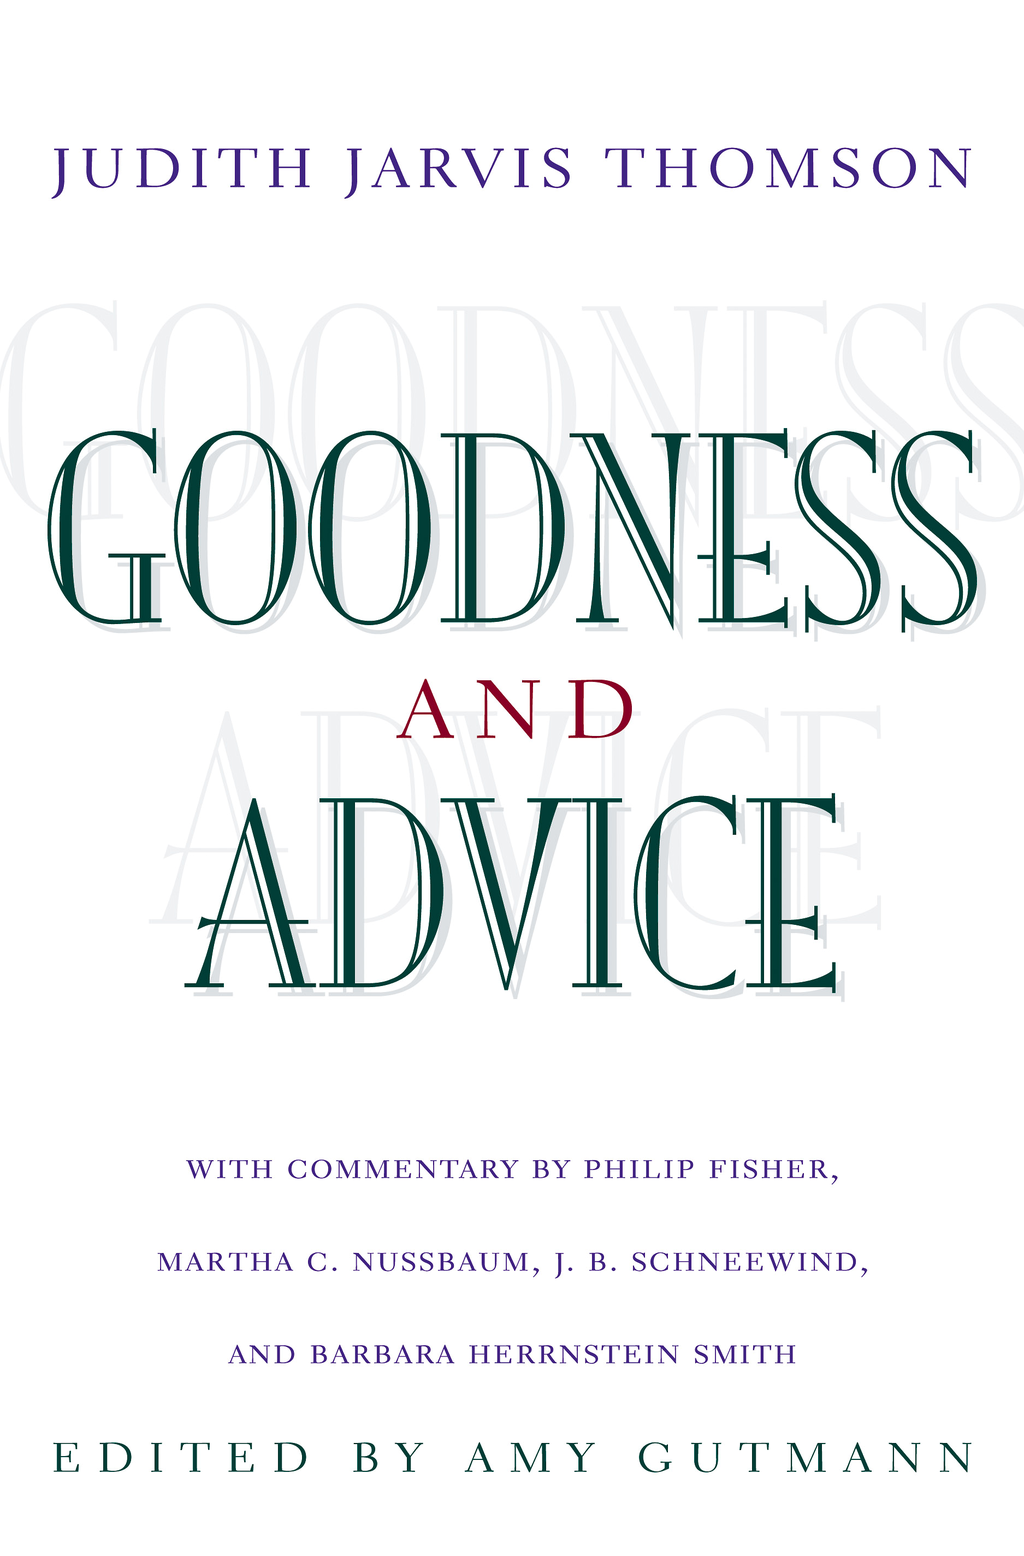 Goodness and Advice: By: Barbara Herrnstein Smith,J. B. Schneewind,Judith Jarvis Thomson,Martha C. Nussbaum,Philip Fisher